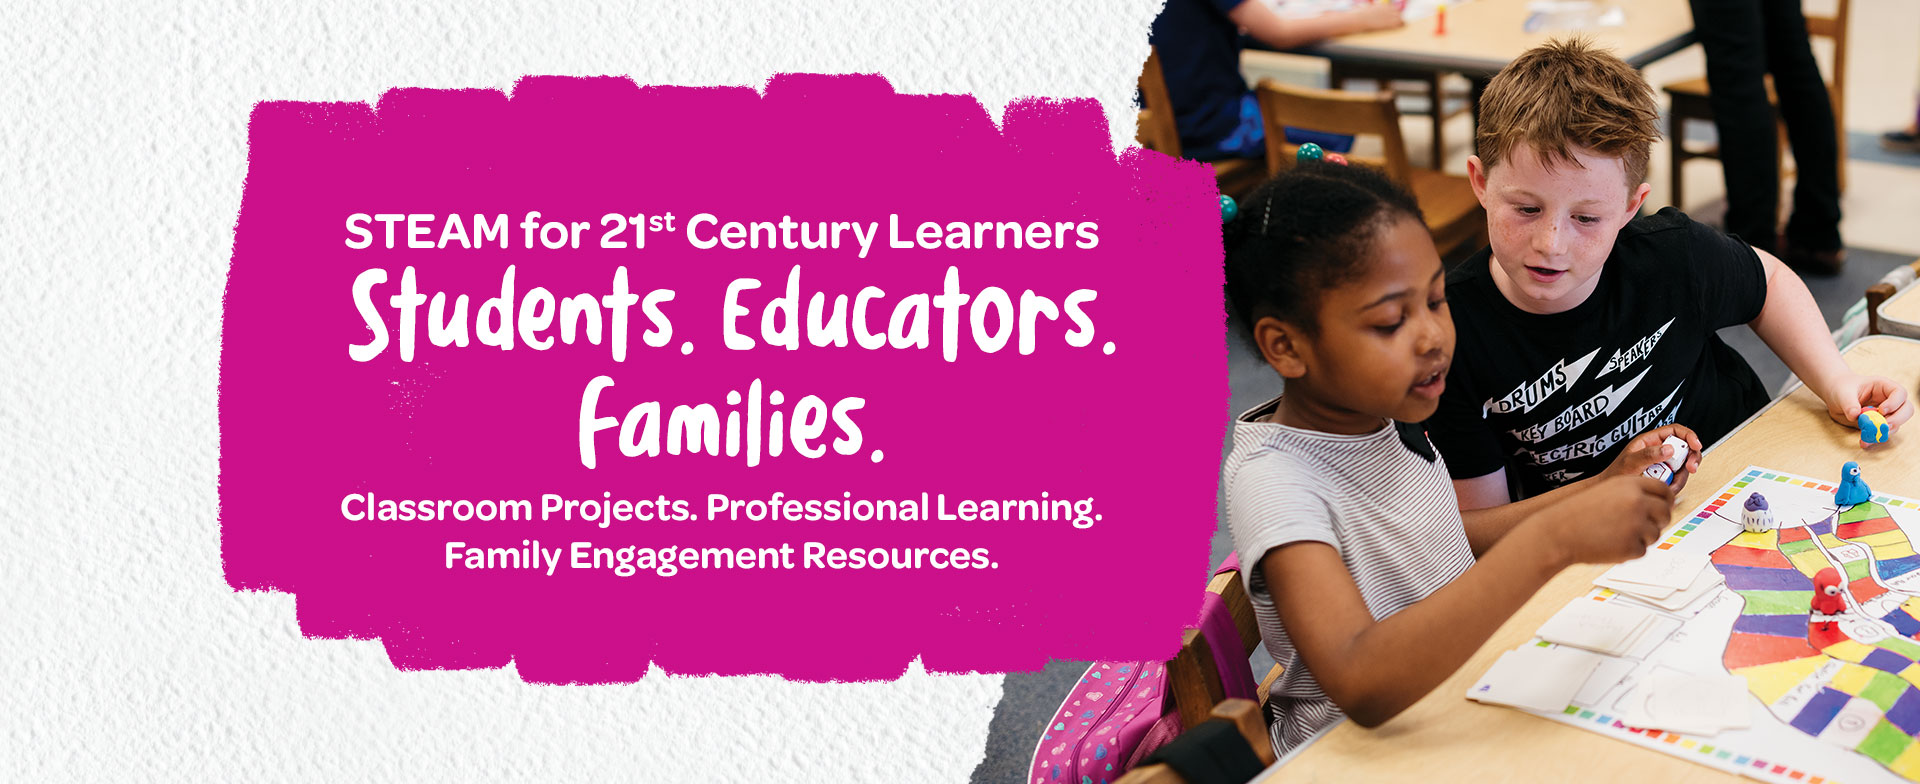 STEAM for 21st Century Learners. Students. Educators. Families. Classroom Projects. Professional Learning. Family Engagement Resources.